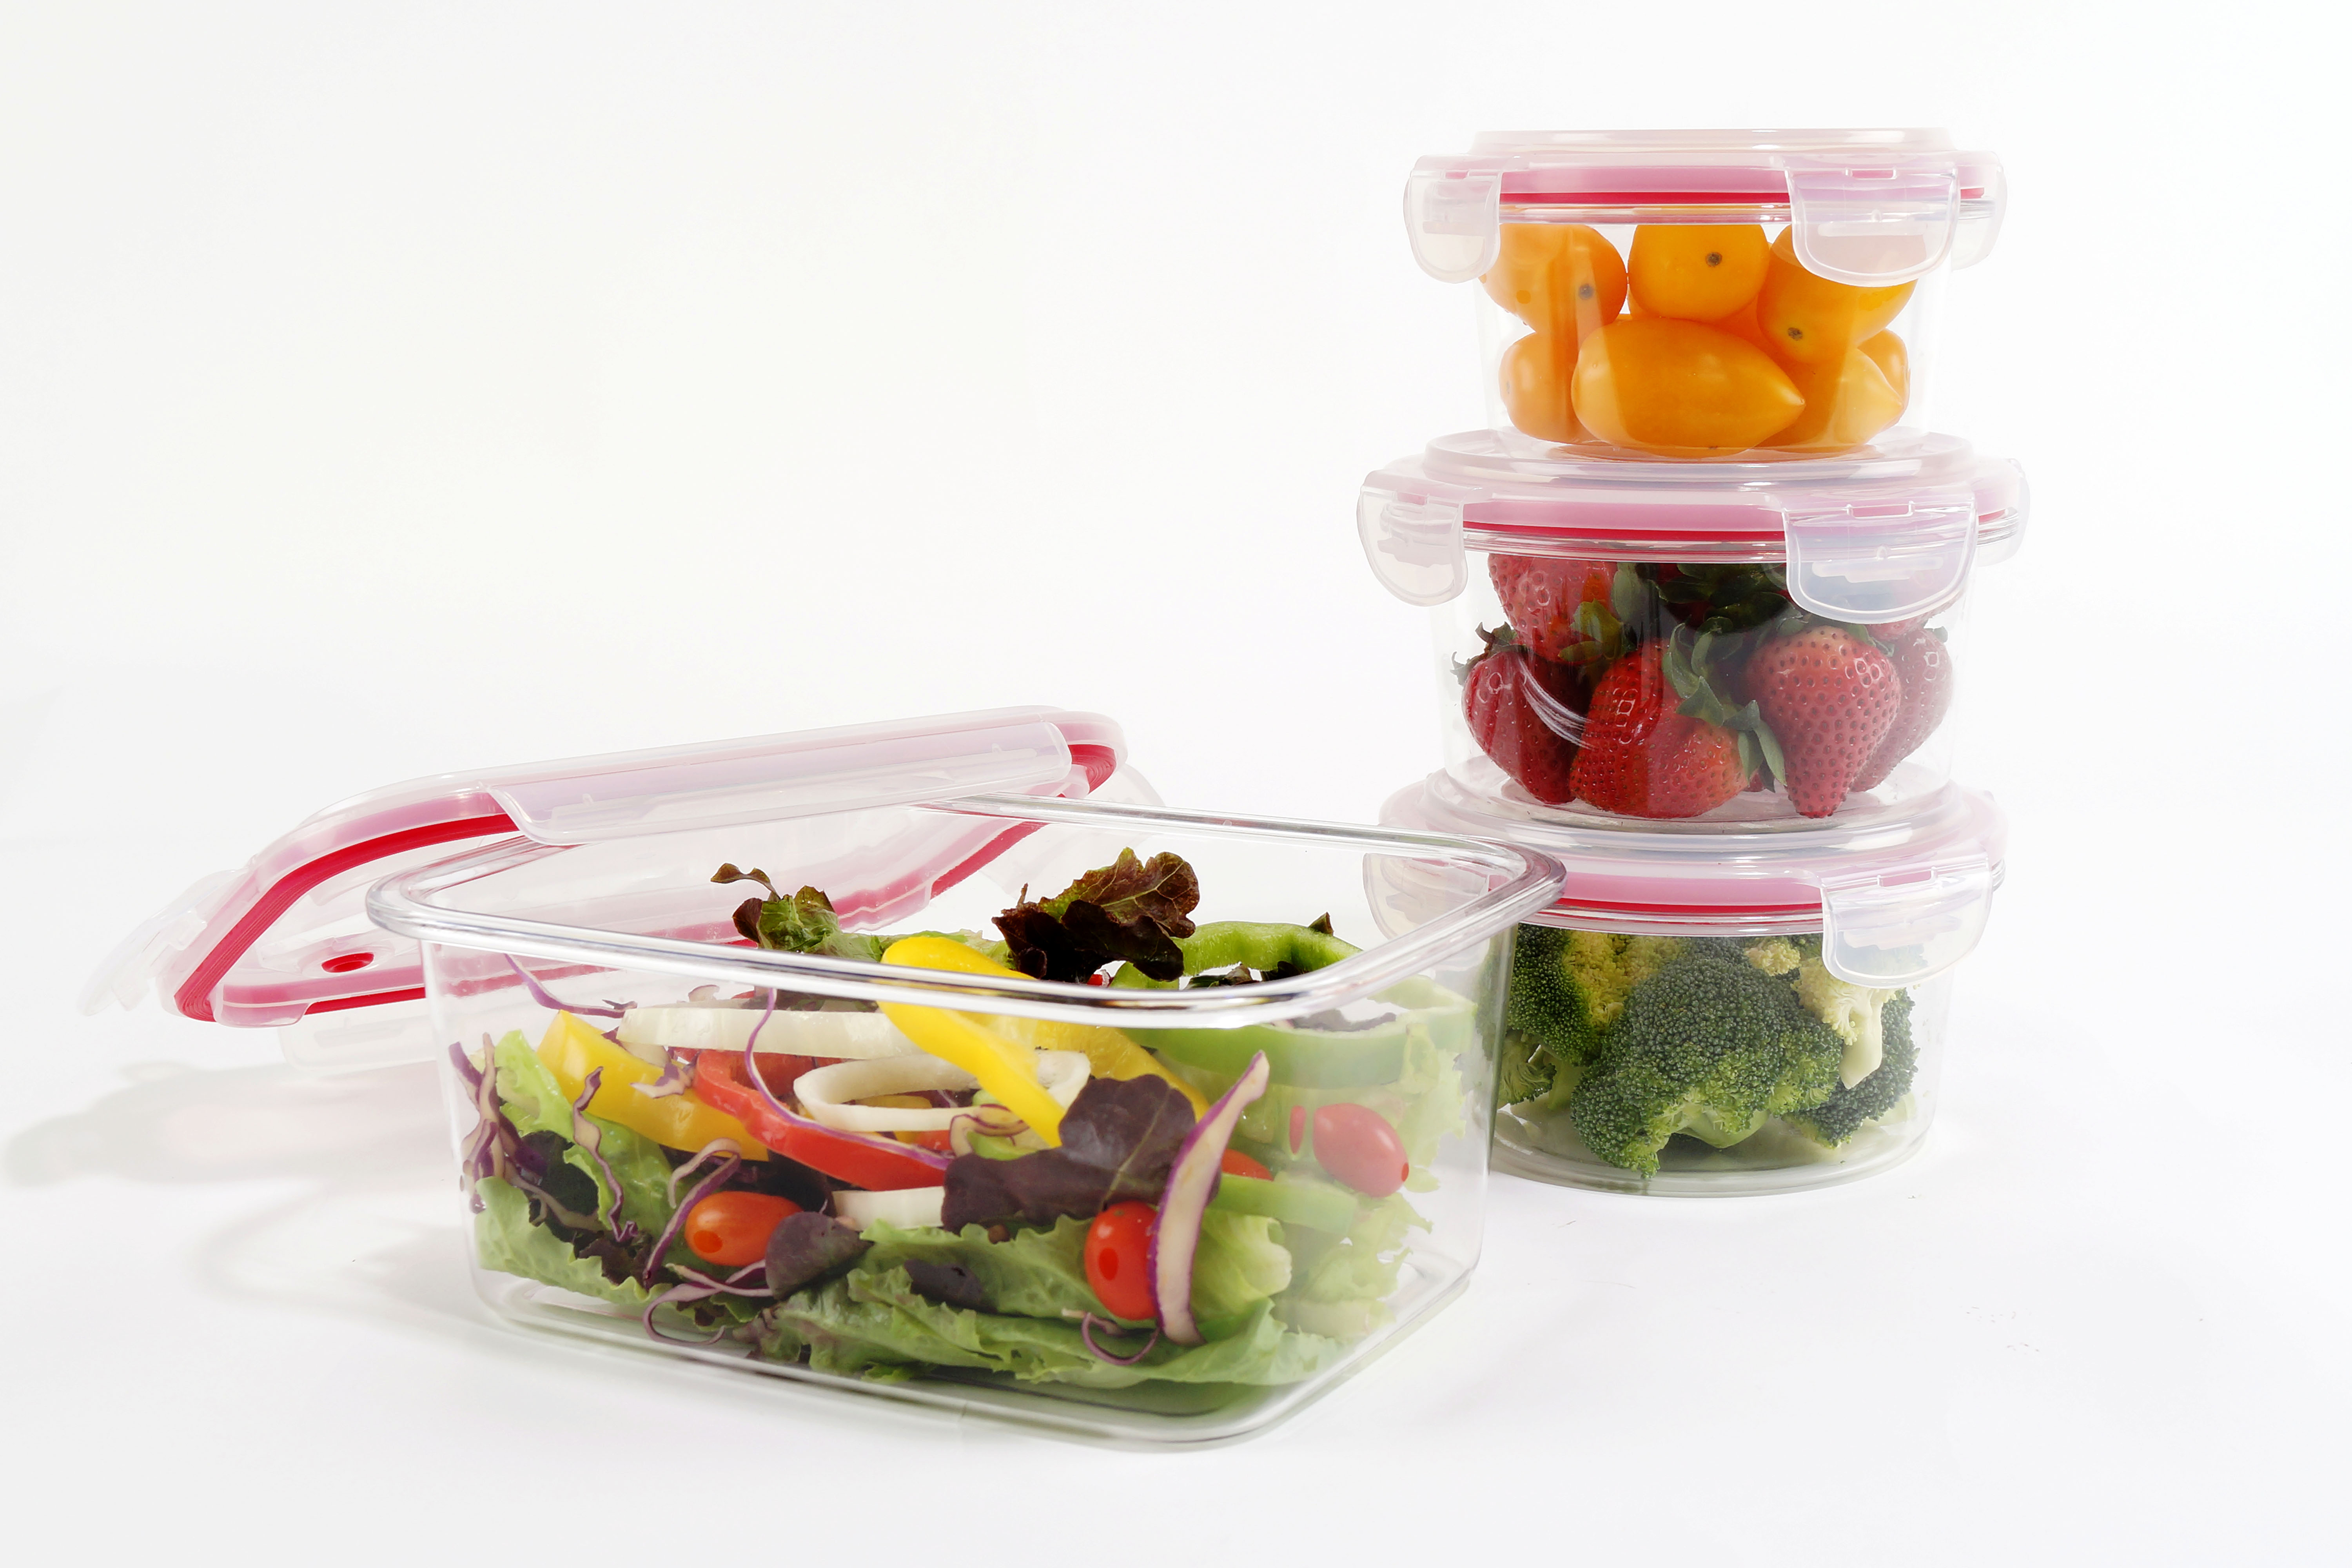 JCJ improves food storage containers with Tritan from Eastman